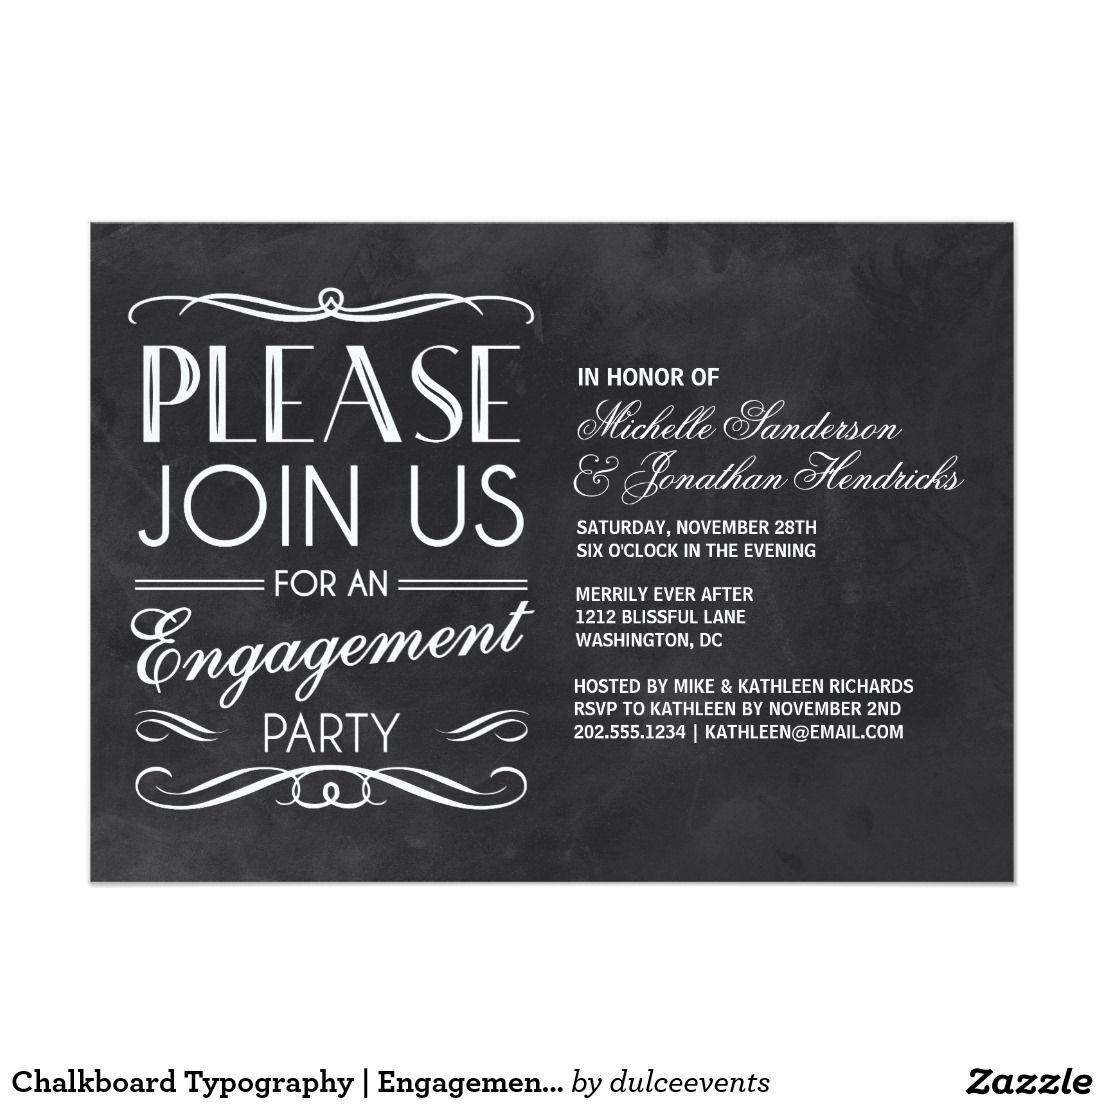 Chalkboard Typography   Engagement Party Invite   Wedding ...